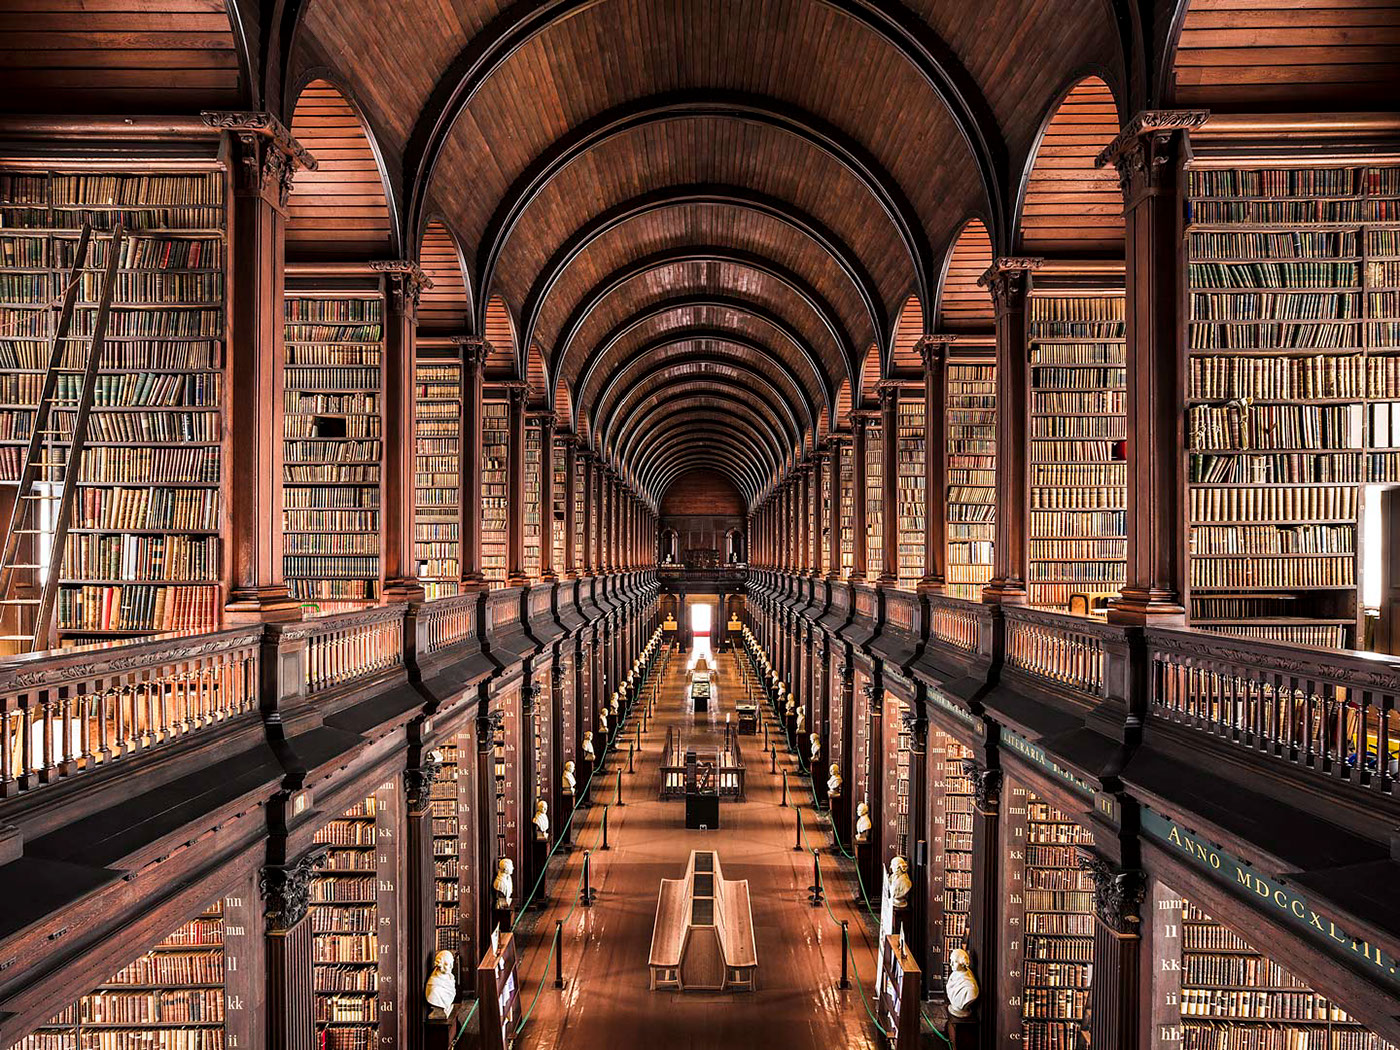 Stunning Photographs of European Libraries (11 pics)